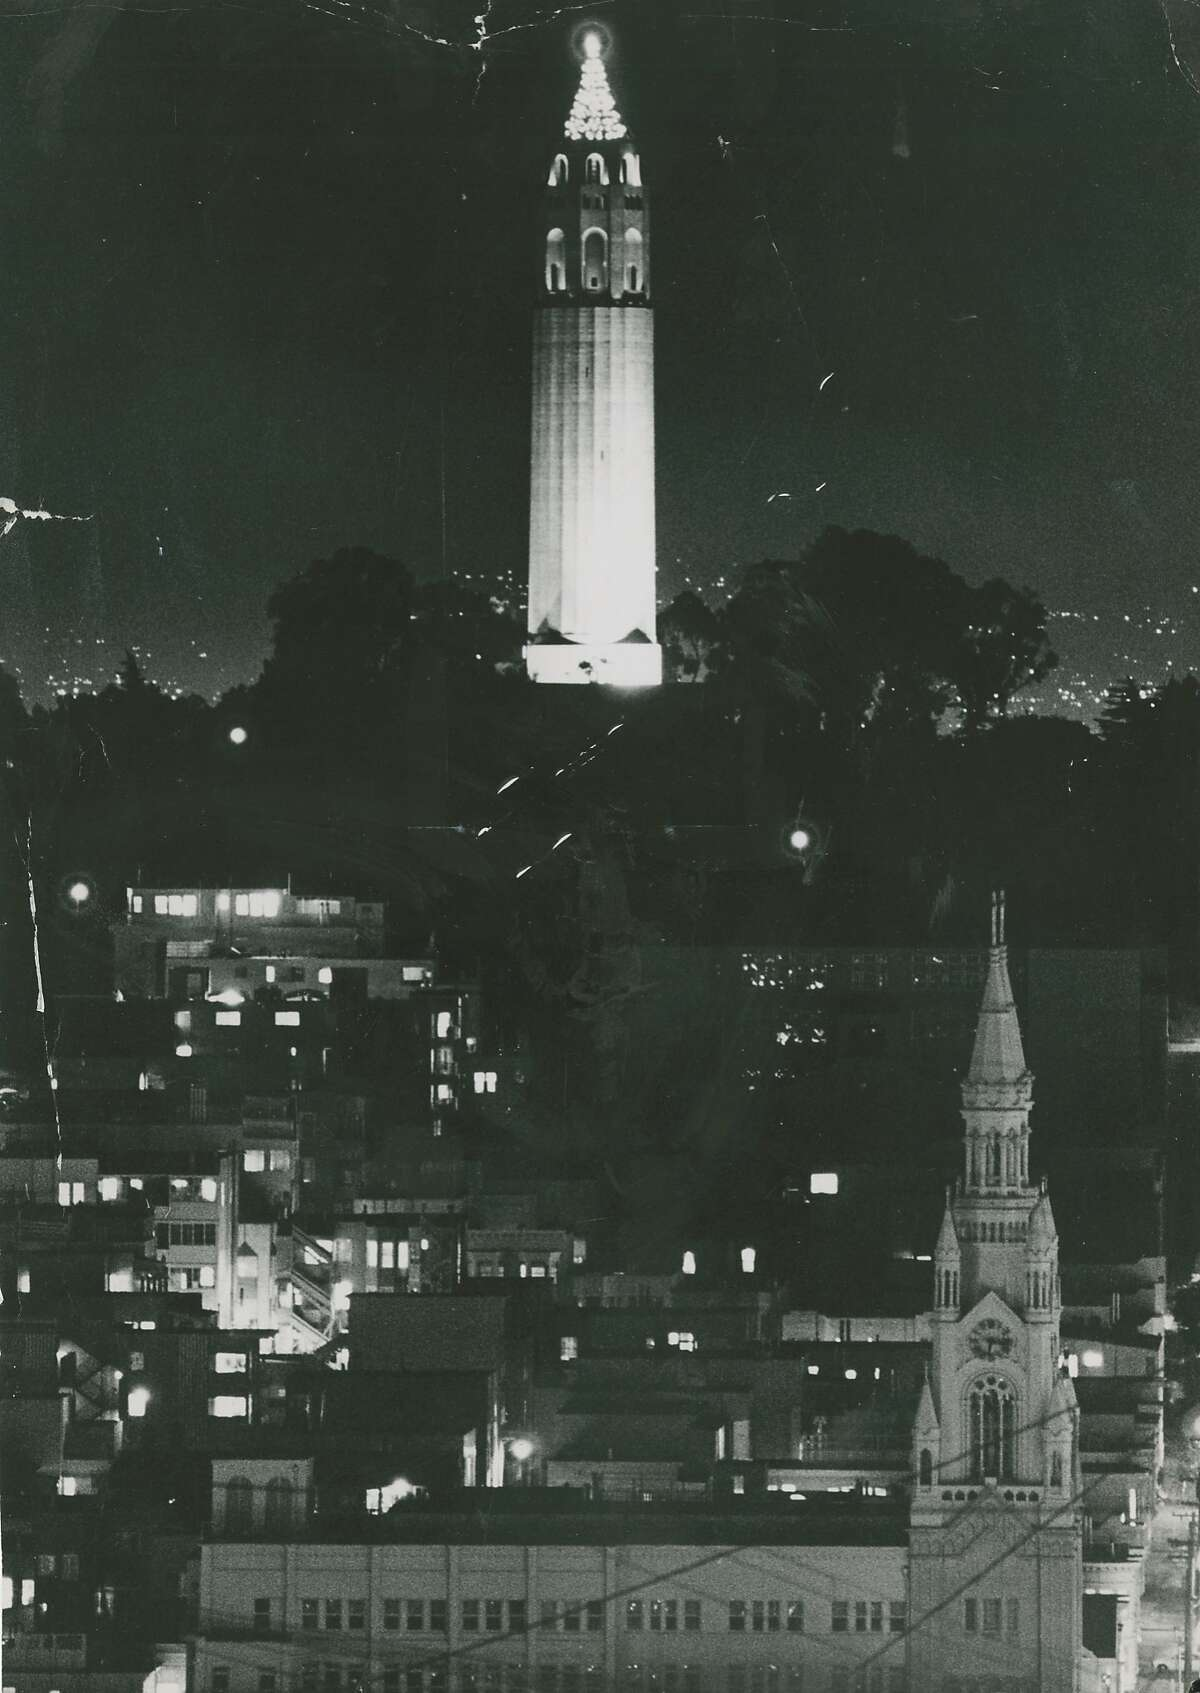 Coit Tower is adorned and lit for Christmas, December 22, 1970. Saints Peter and Paul Church is seen in the foreground.